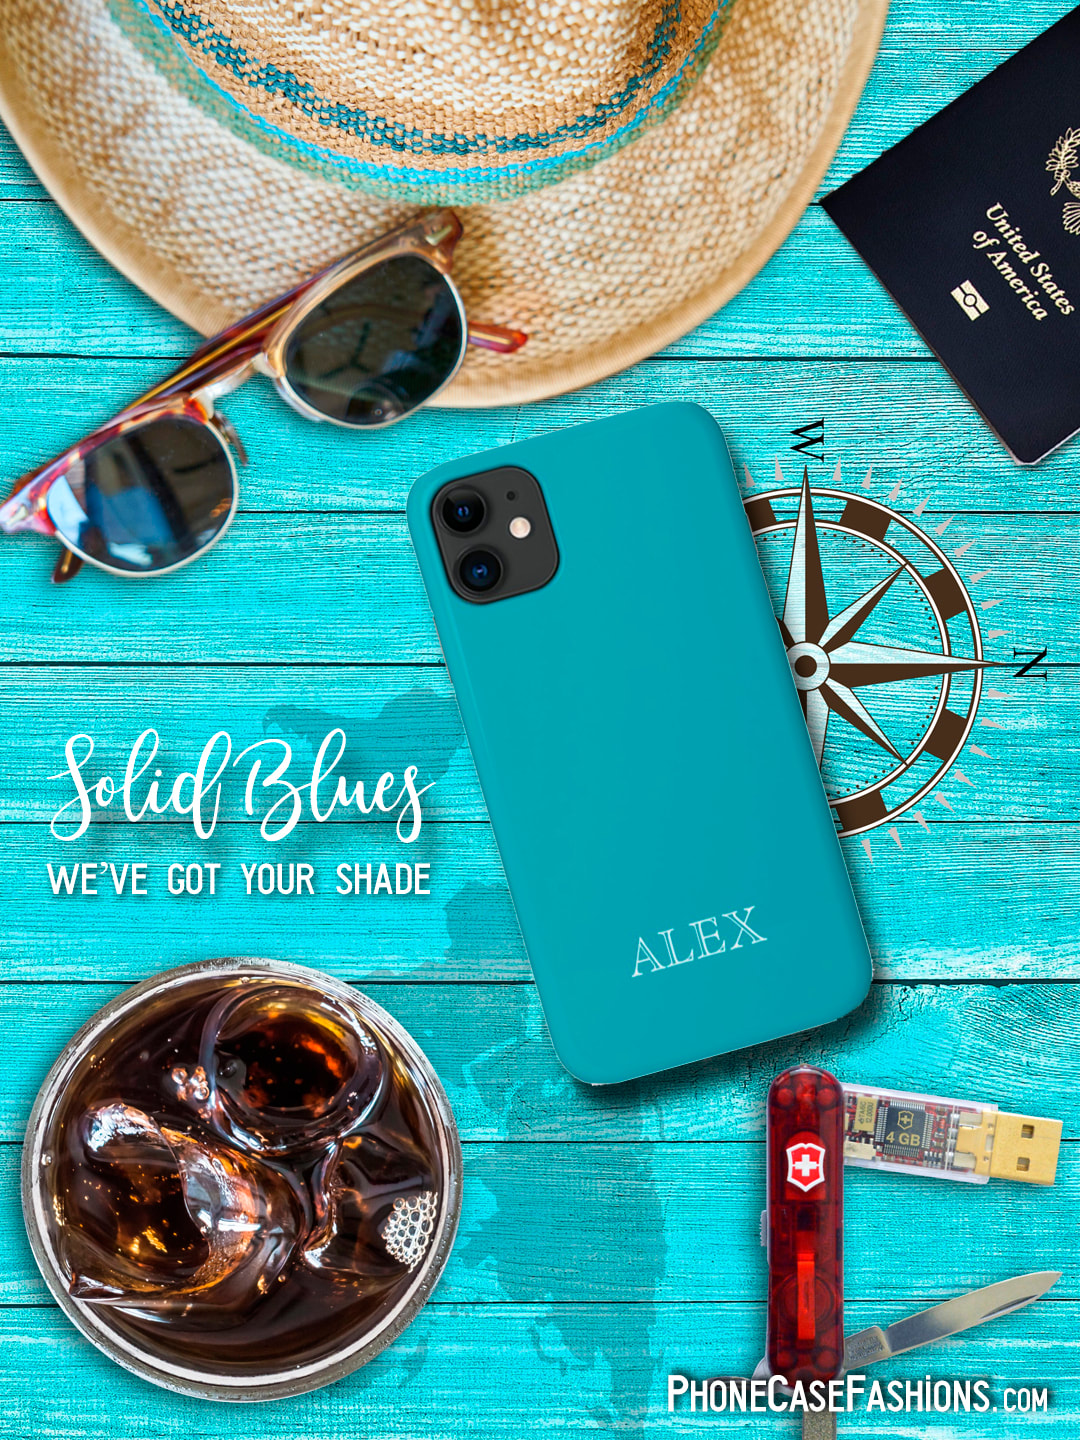 We've got your shade of blue...16 to choose from. Customize with your name, monogram or initial, add a photo, a saying or just leave your case your favorite hue of blue. Don't hide behind an ugly phone case! Shop PhoneCaseFashions.com